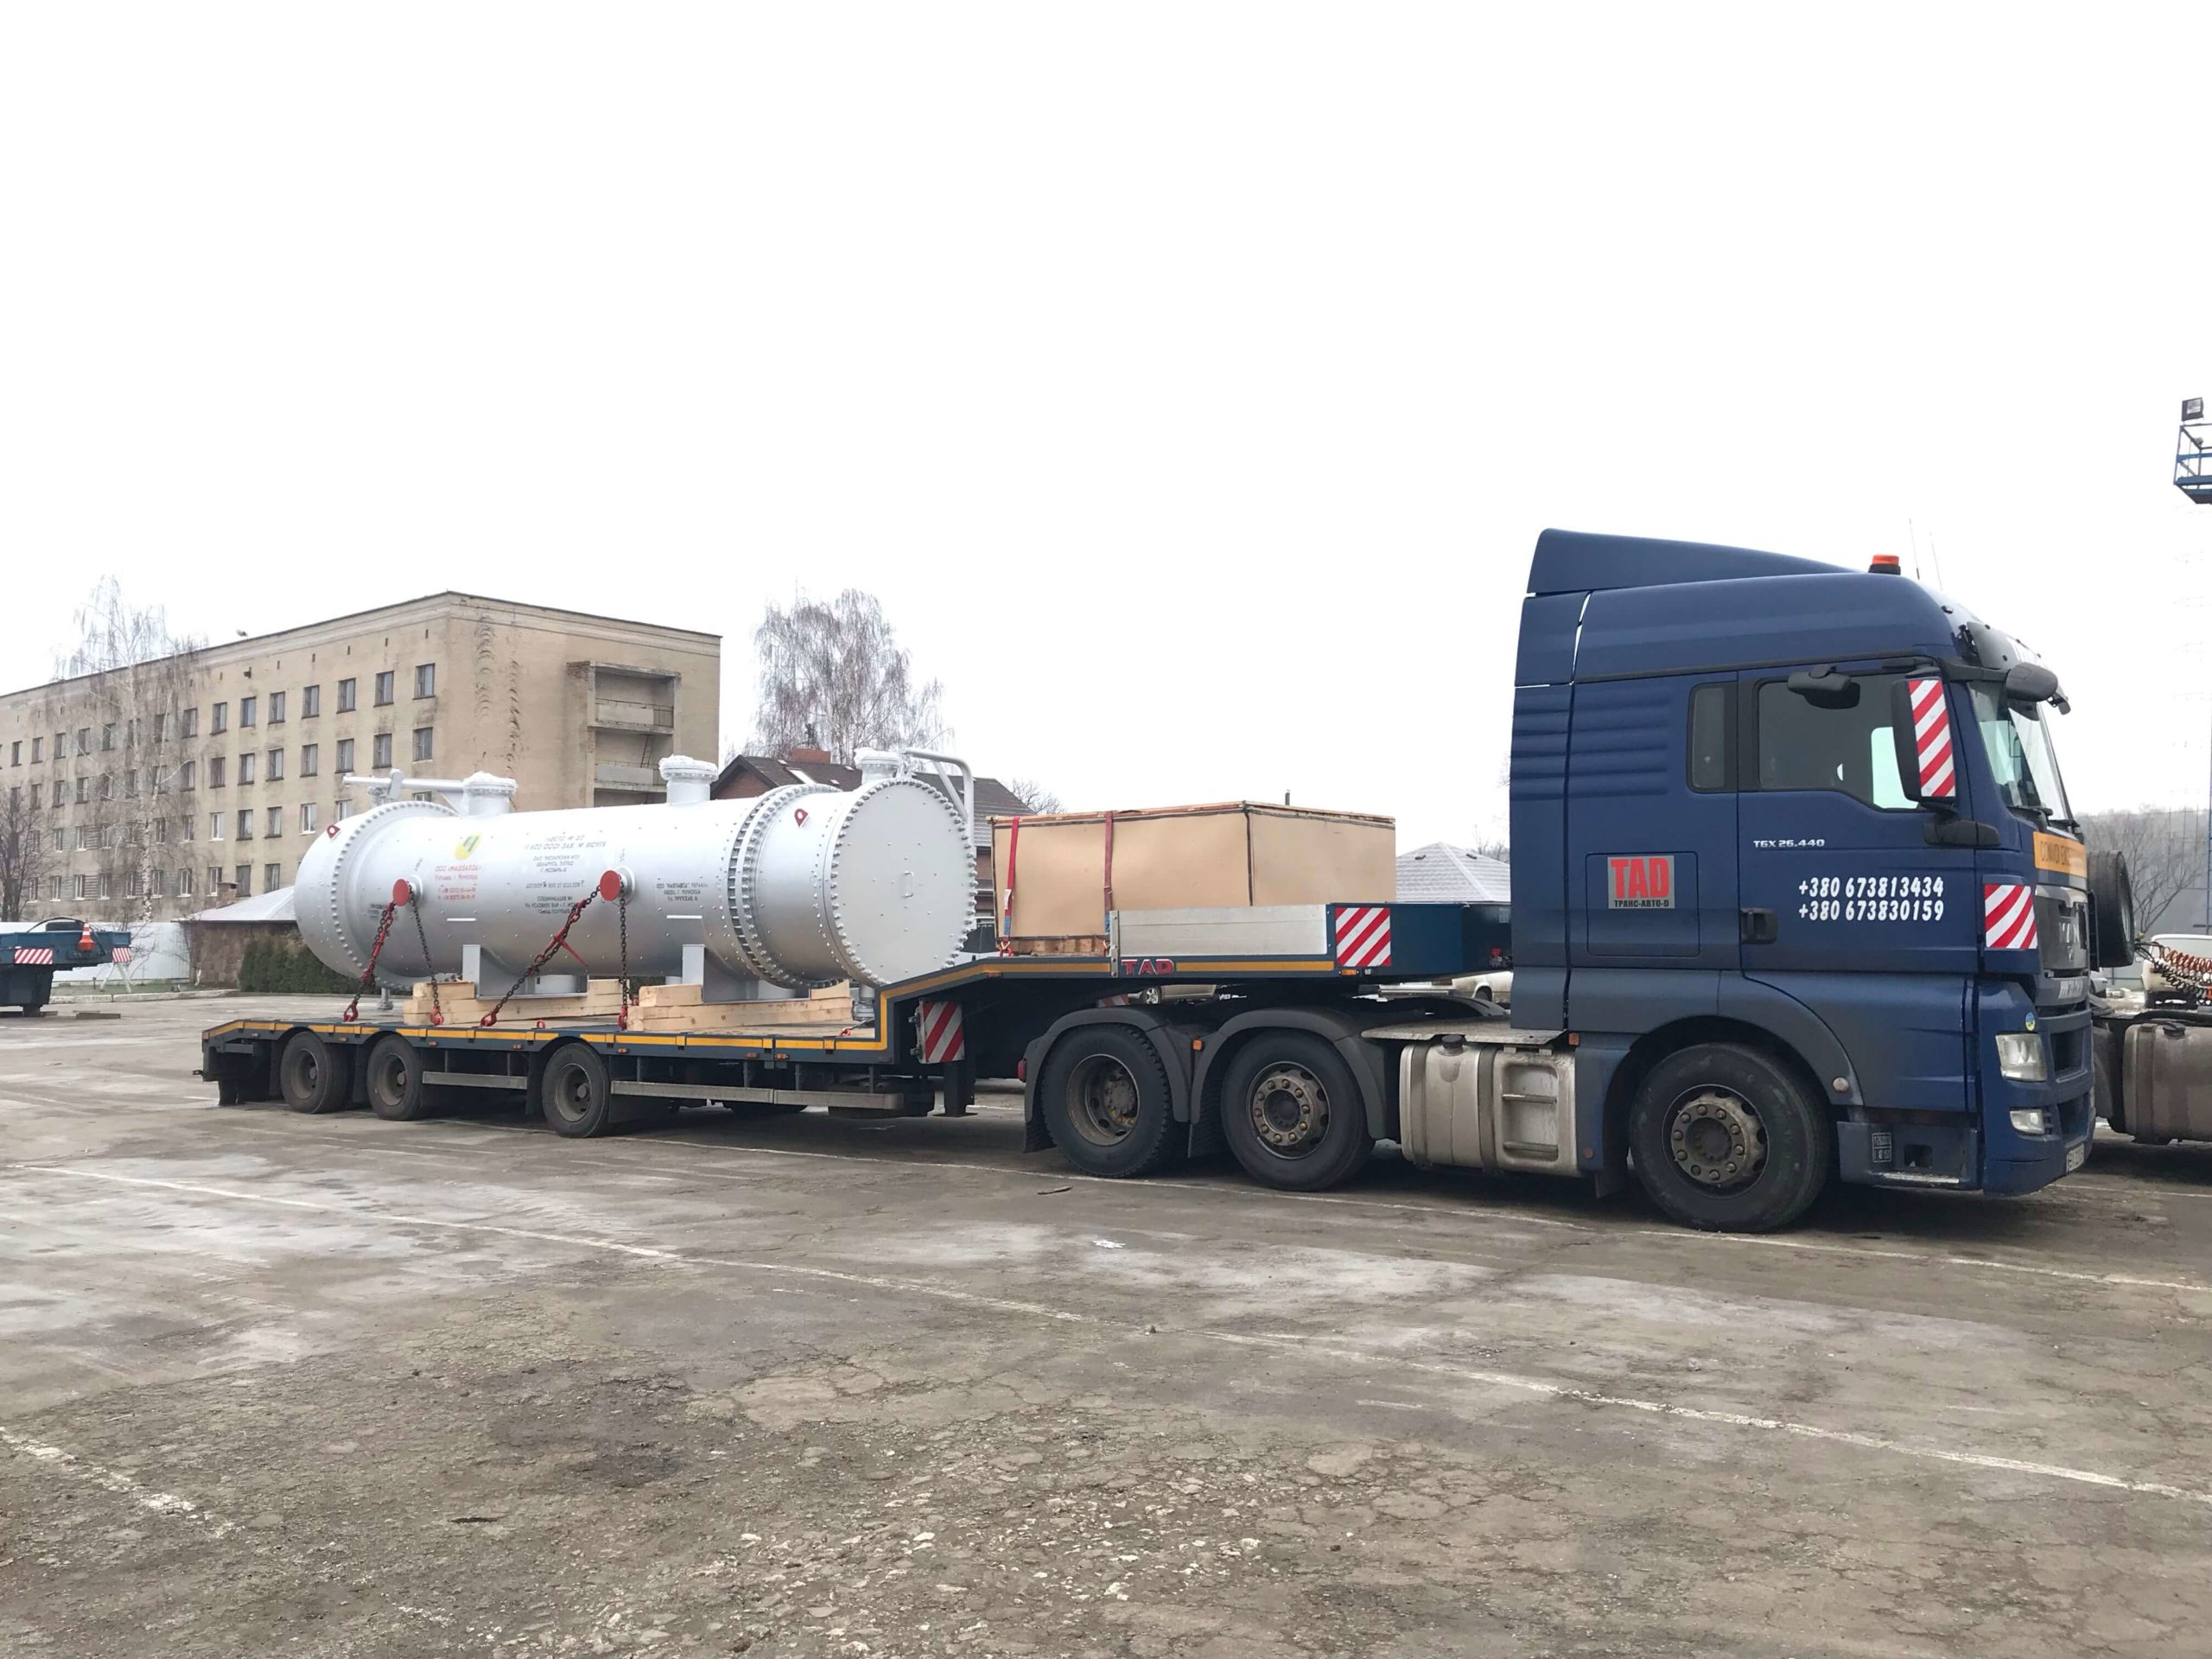 Transportation of industrial barrels manufactured by Motor Sich